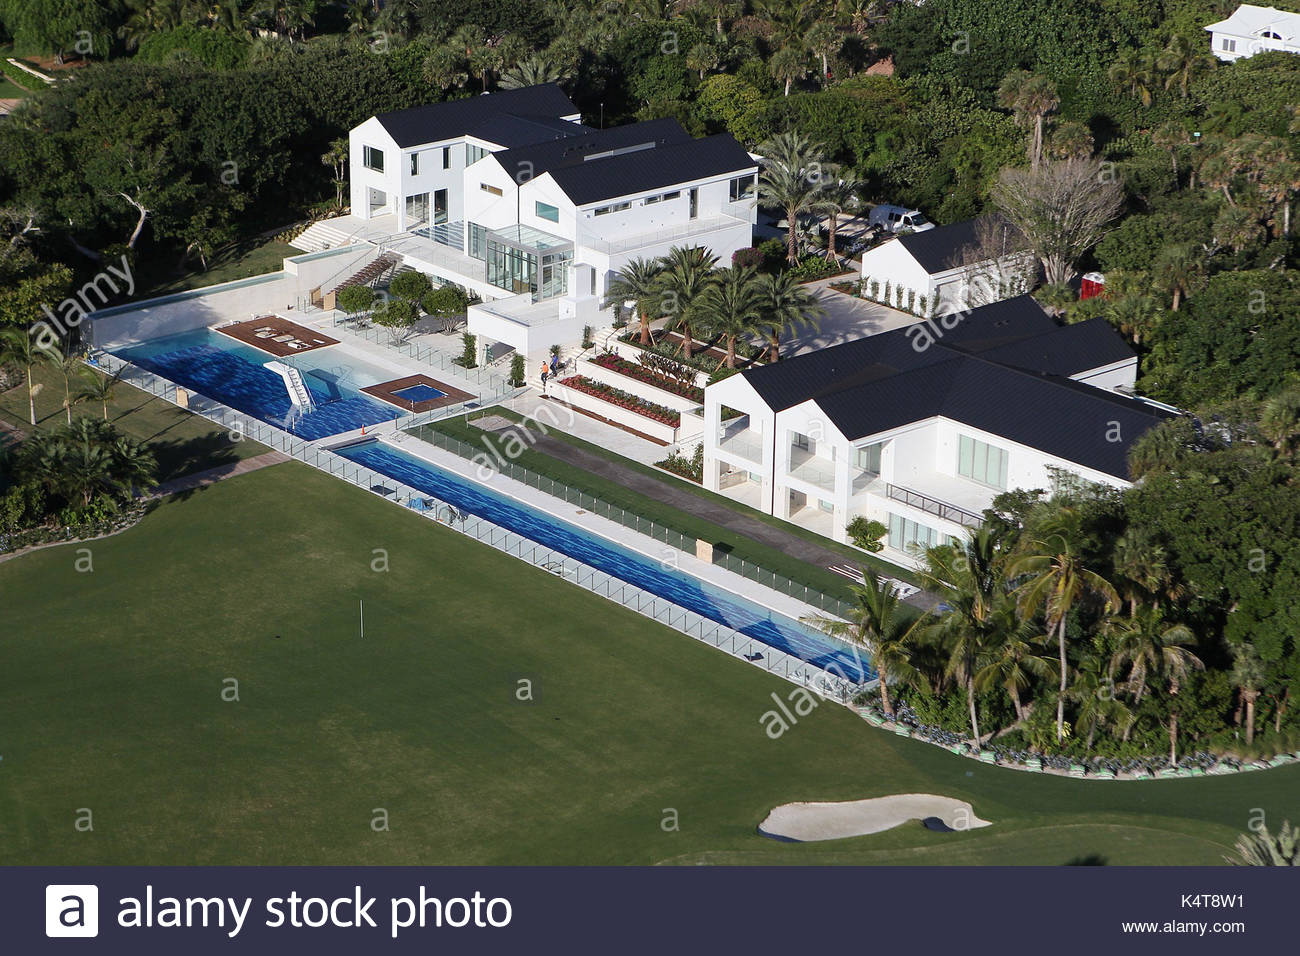 Tiger Woodu0027s House In Jupiter Island, Florida. Workmen Carry Out The Final  Touches To